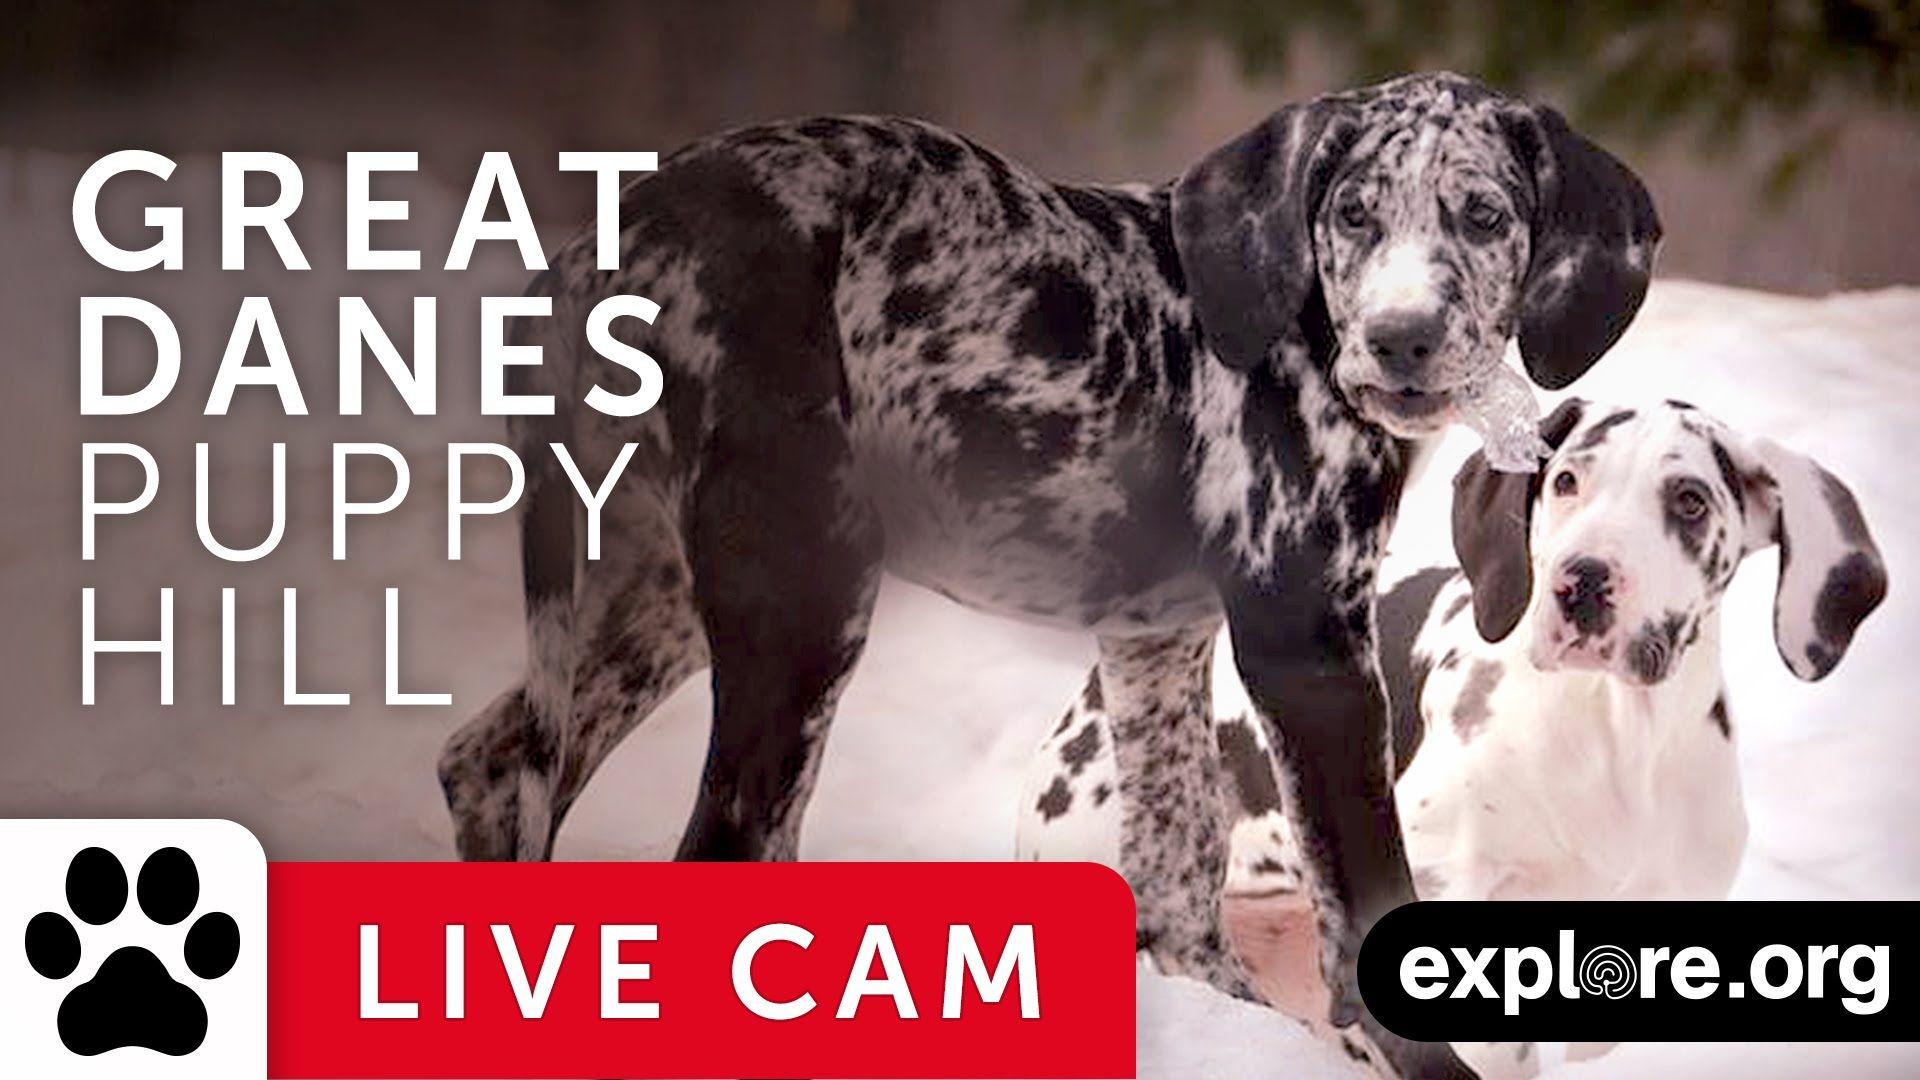 Great Danes Puppy Hill - Service Dog Project powered by EXPLORE.org